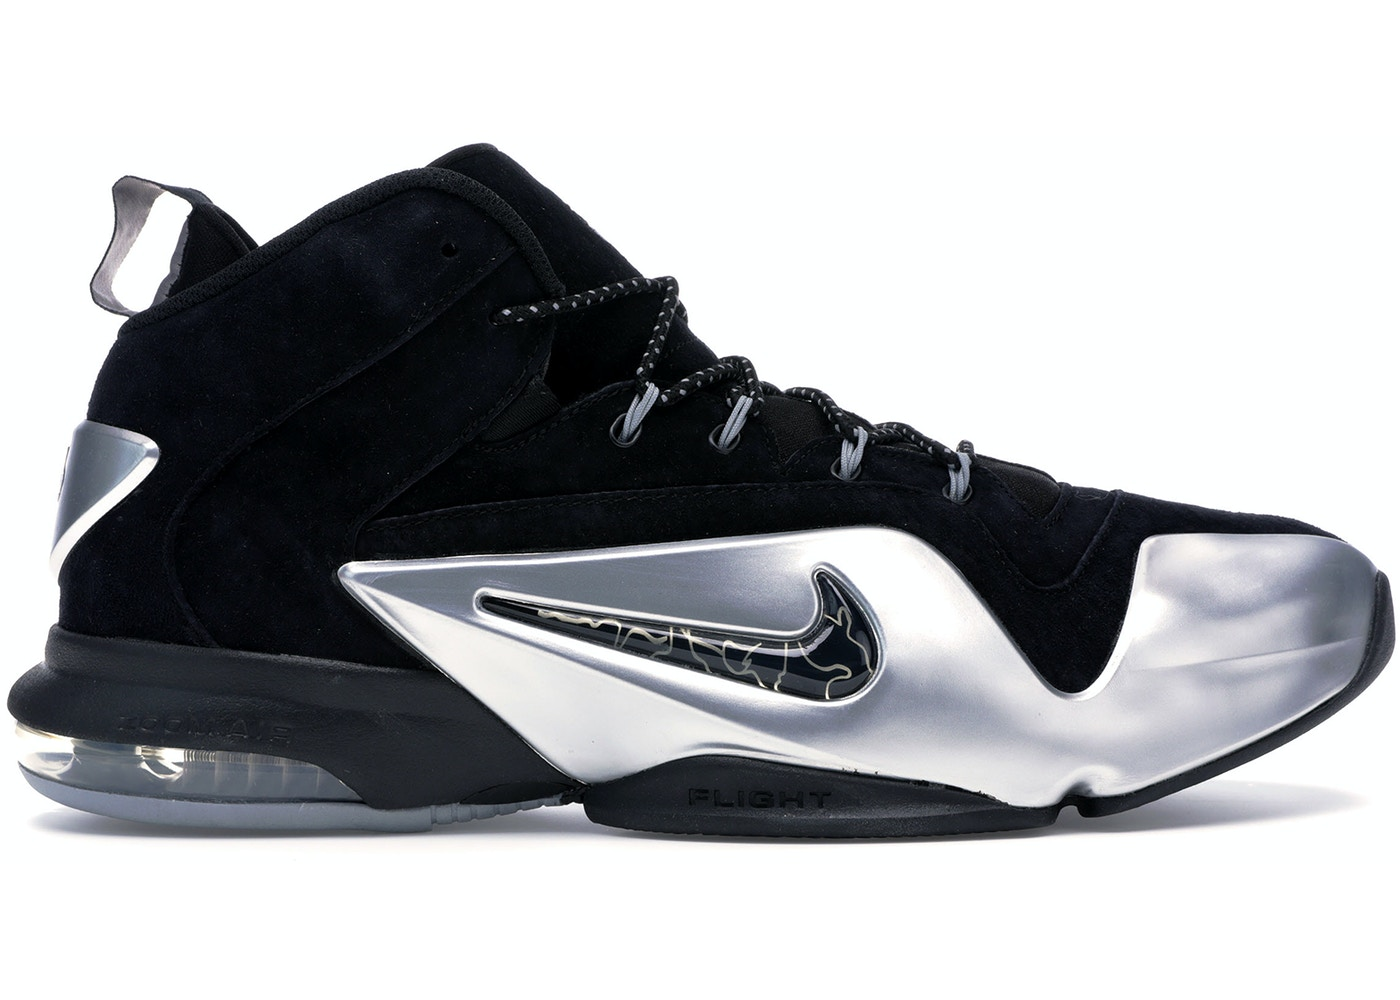 new product 3f5fe b2592 Nike Basketball Penny Shoes - Total Sold